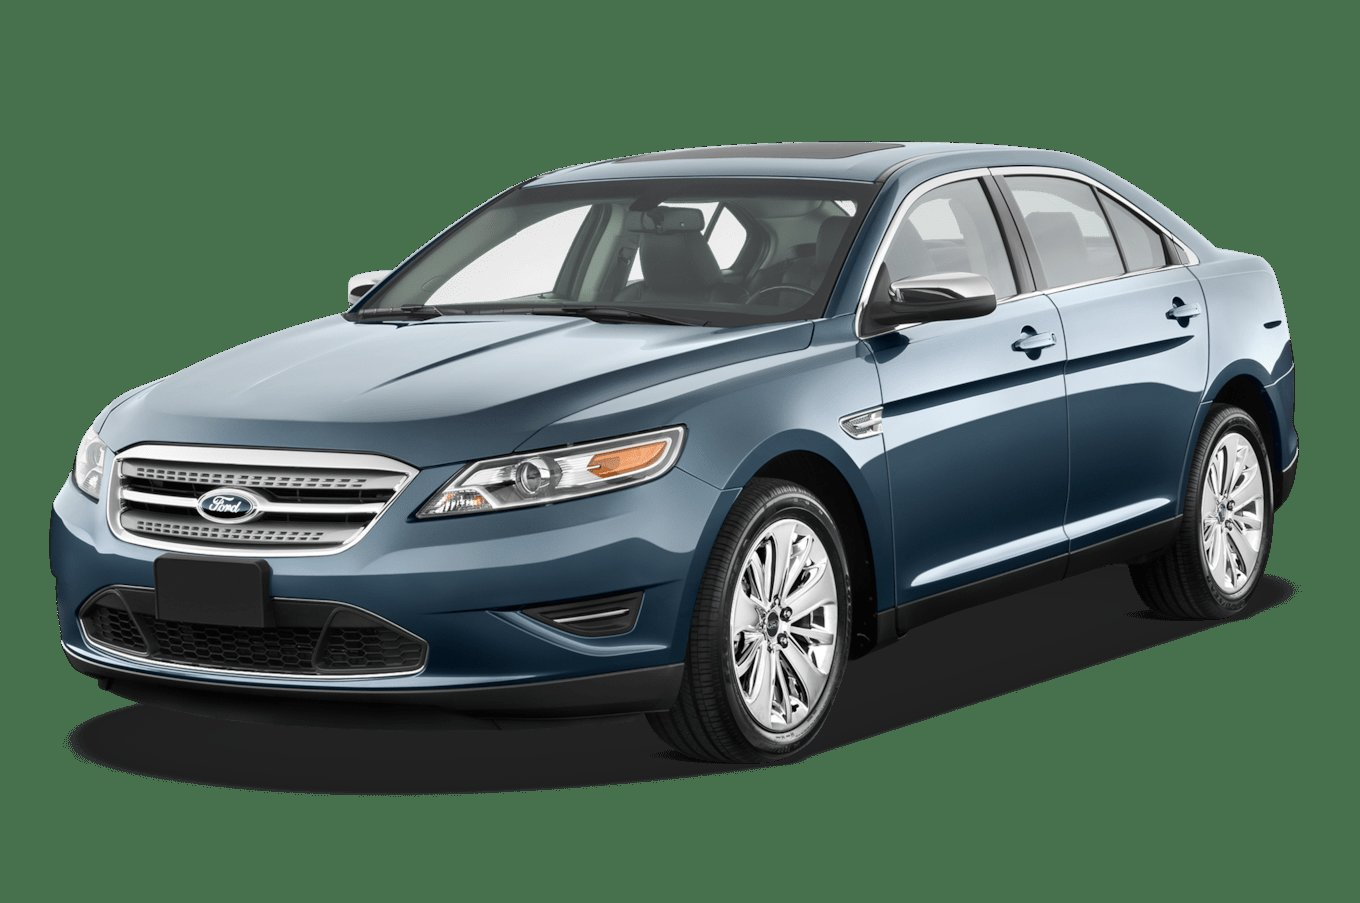 Latest 2010 Ford Taurus Reviews Research Taurus Prices Specs Free Download Original 1024 x 768